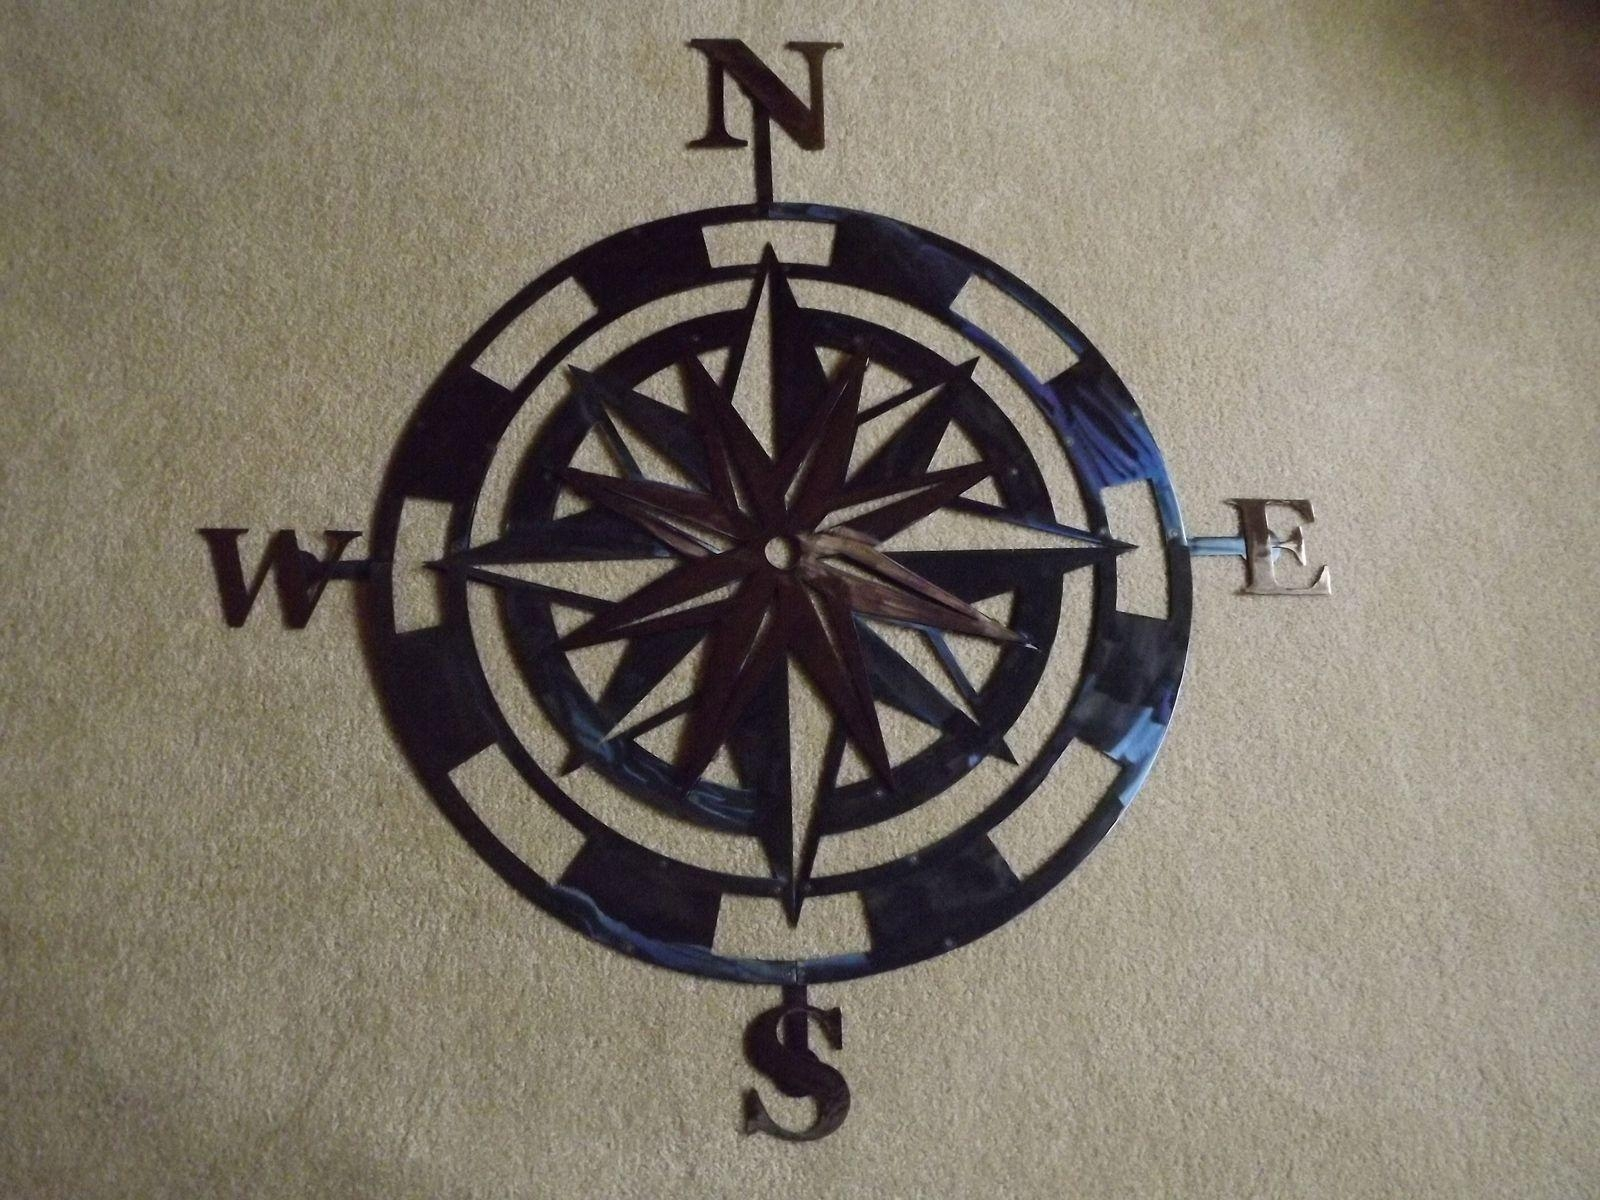 Wall Art Design Ideas: Handmade Rose Compass Wall Art Metal Intended For Stainless Steel Outdoor Wall Art (View 20 of 20)